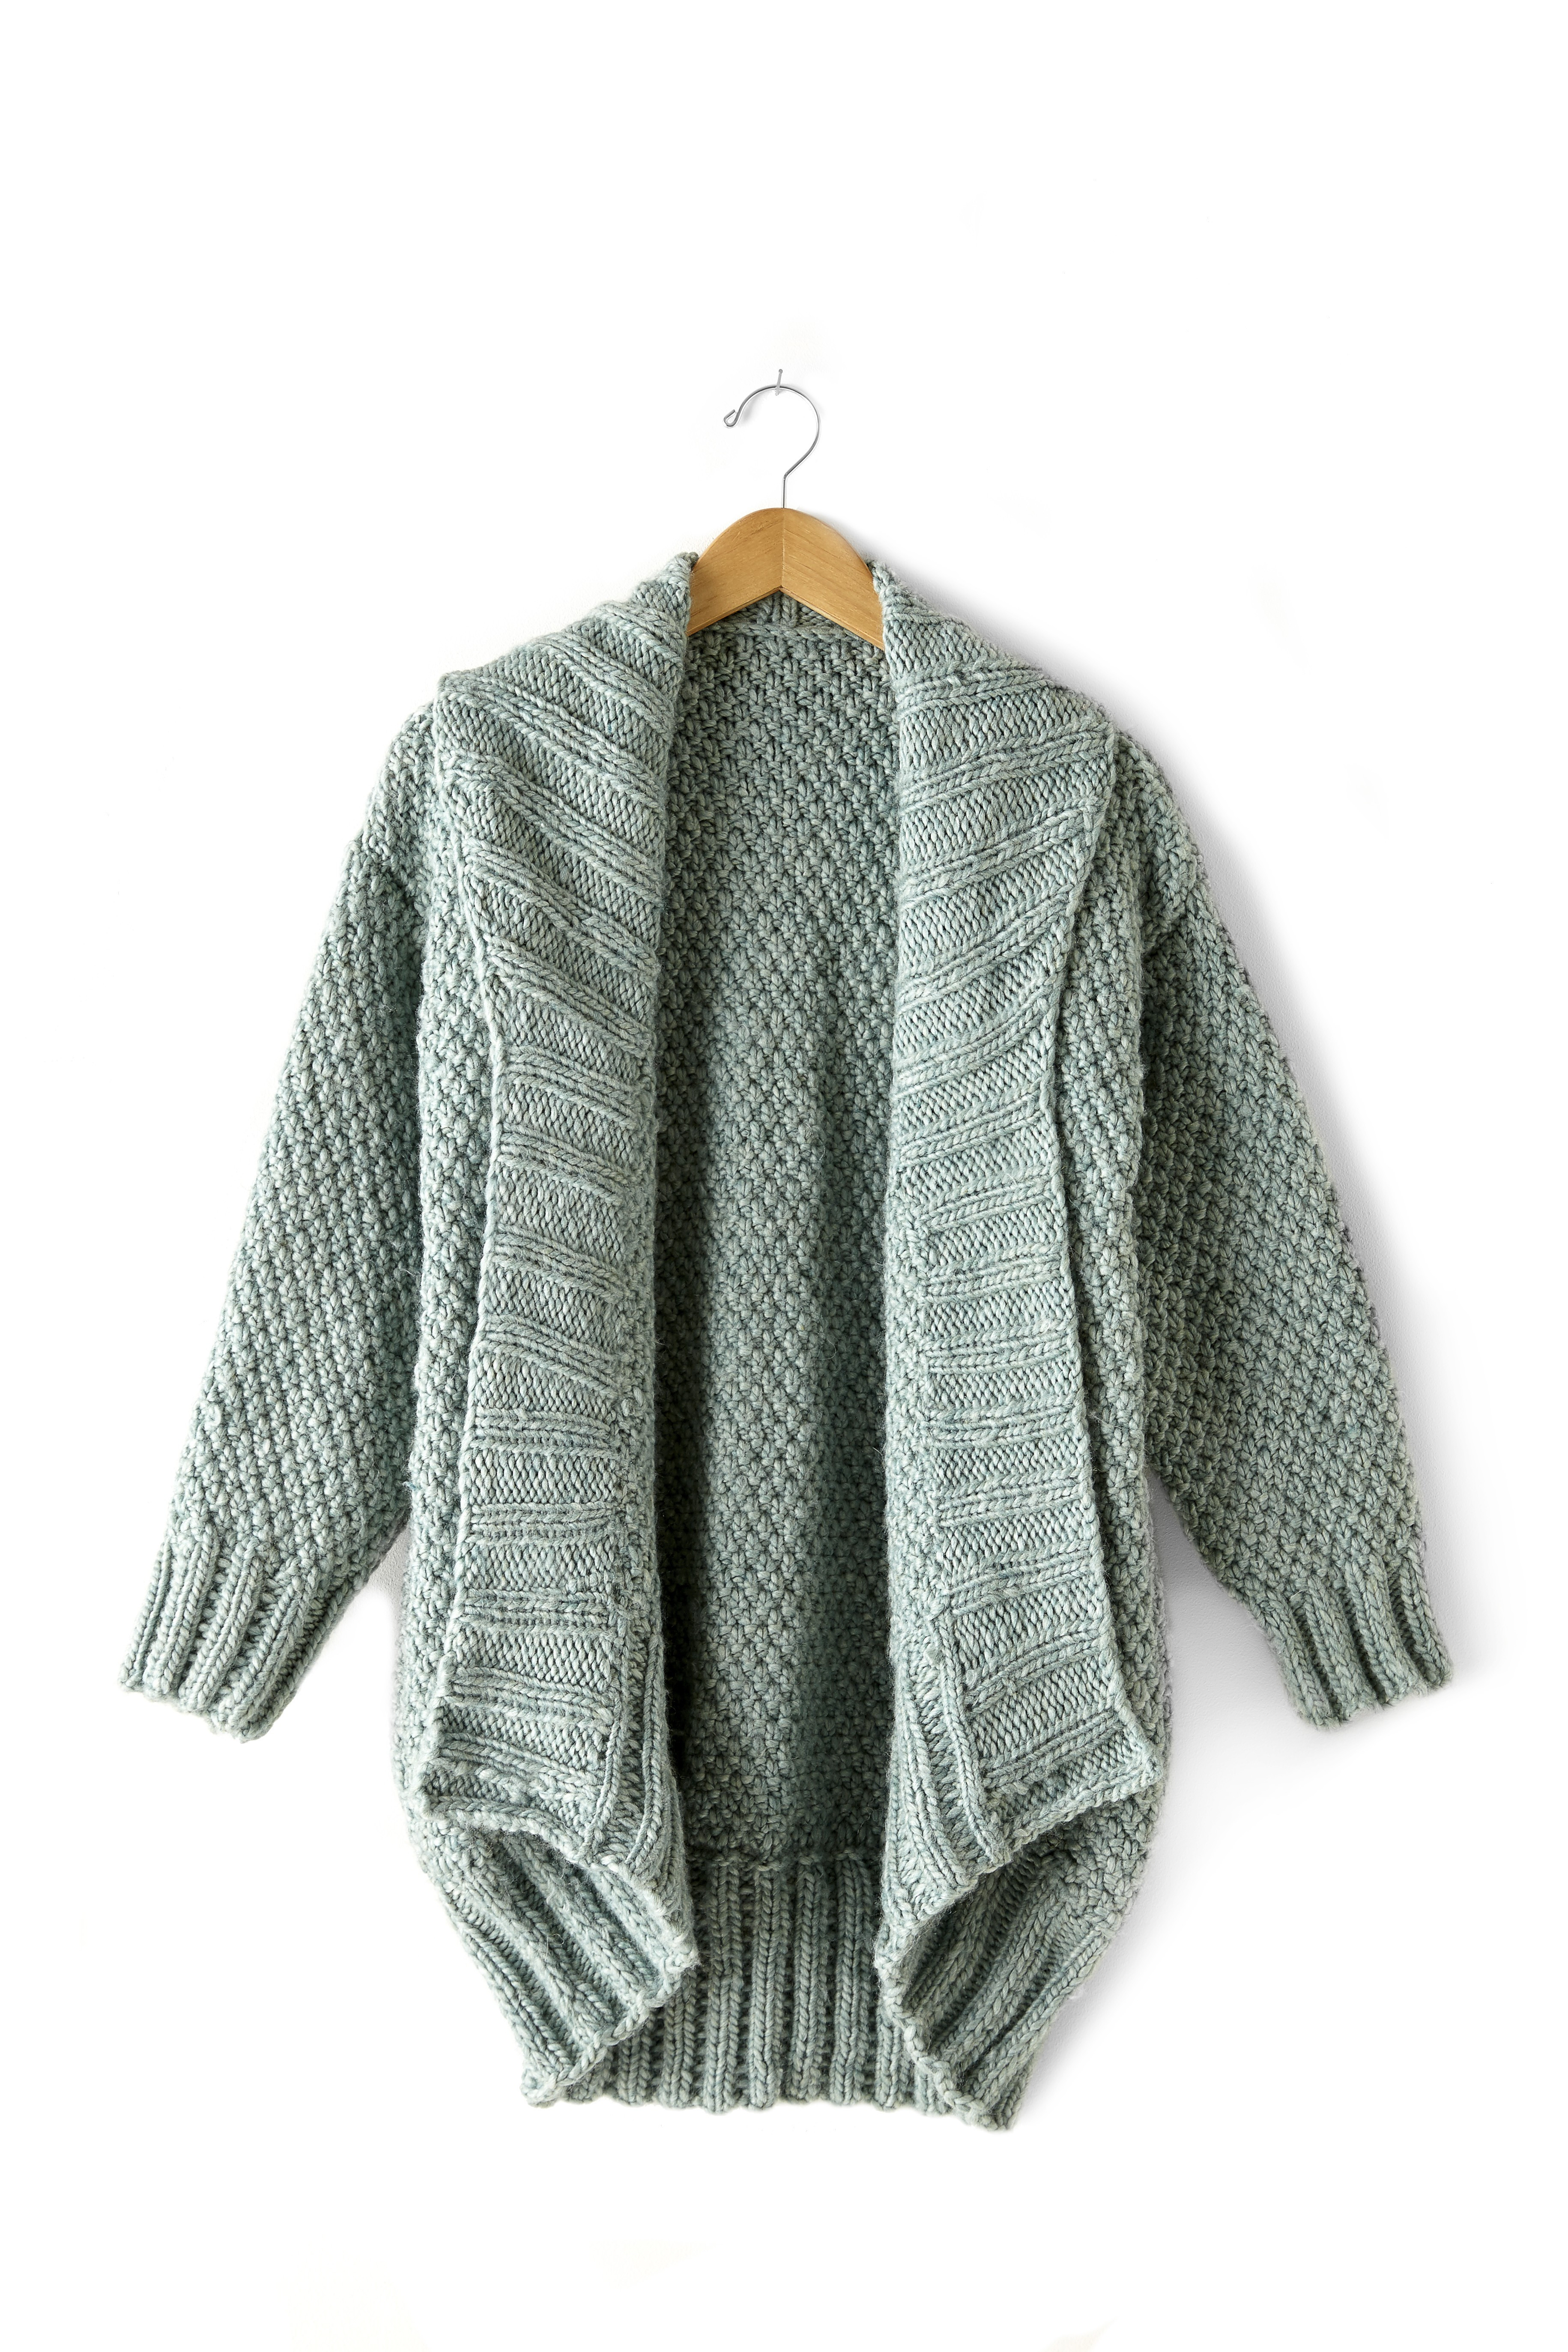 Cardigan Pattern Unique Cocoon Sweater Crochet Pattern Crochet and Knit Of Superb 46 Images Cardigan Pattern